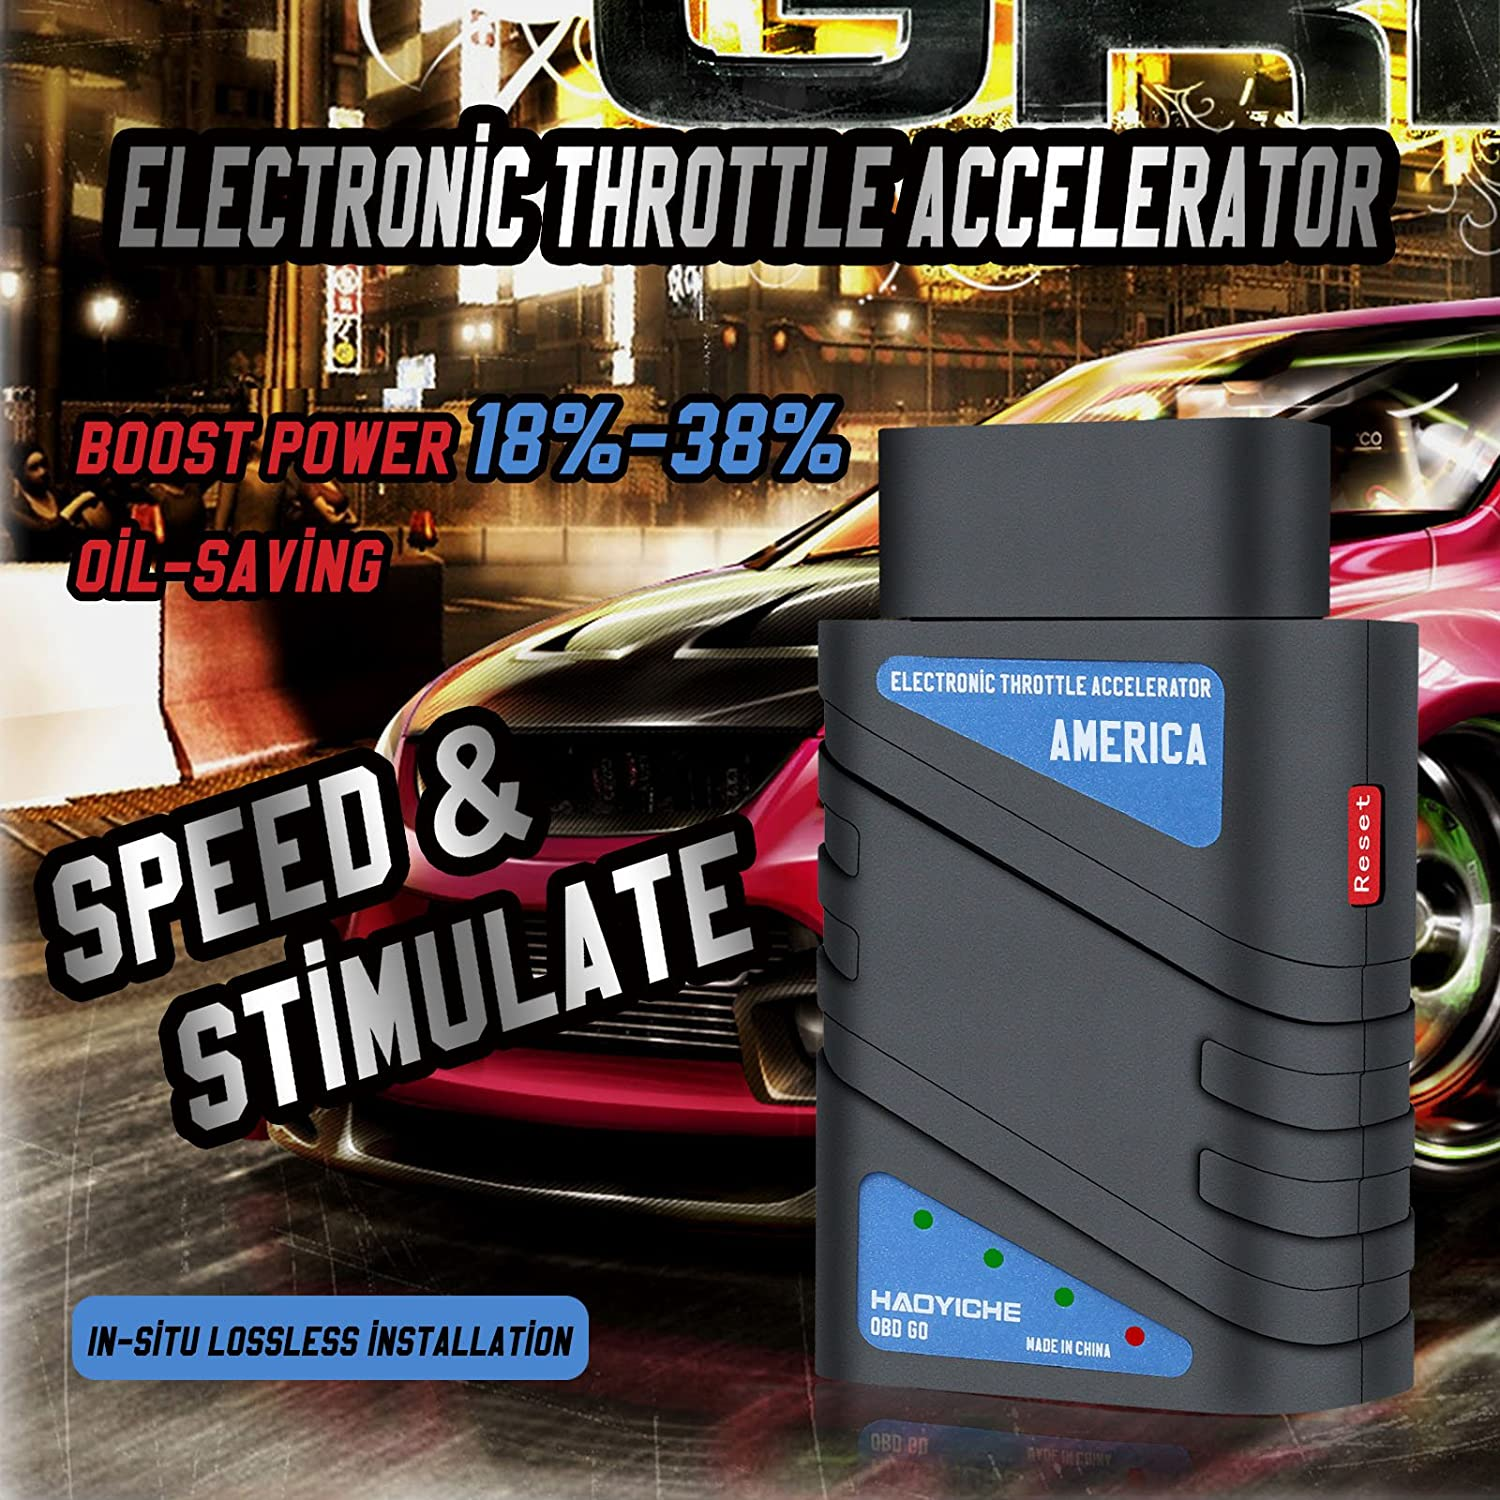 Booster Power Up to 18/% to 38/% HAOYICHE 16Pin OBD2 OBDII Electronic Throttle Accelerator Adapter Automative Engine Power Enhancer Fuel Efficient /& Increased Performance Only Fit for Petrol Vehicles